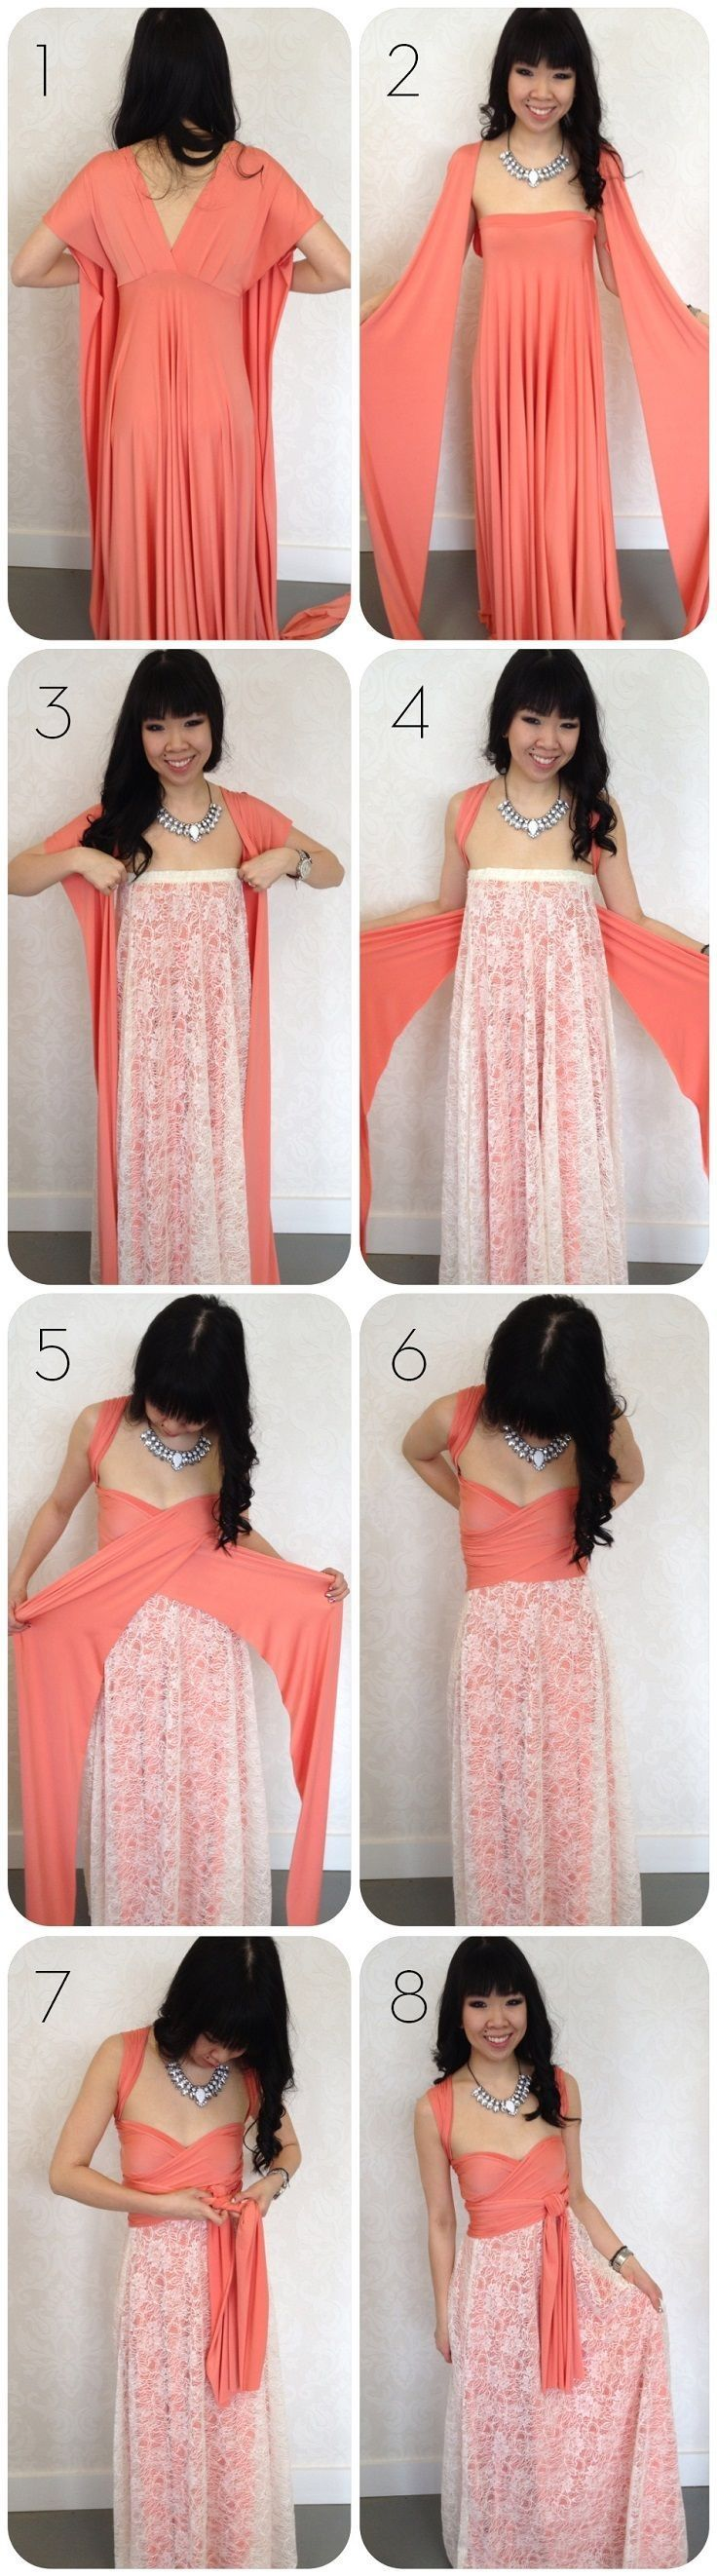 How to add Lace to a Convertible Dress..   ok.. forget the convertible dress part.. but how cool to add over  a dress and   top with a shrug!